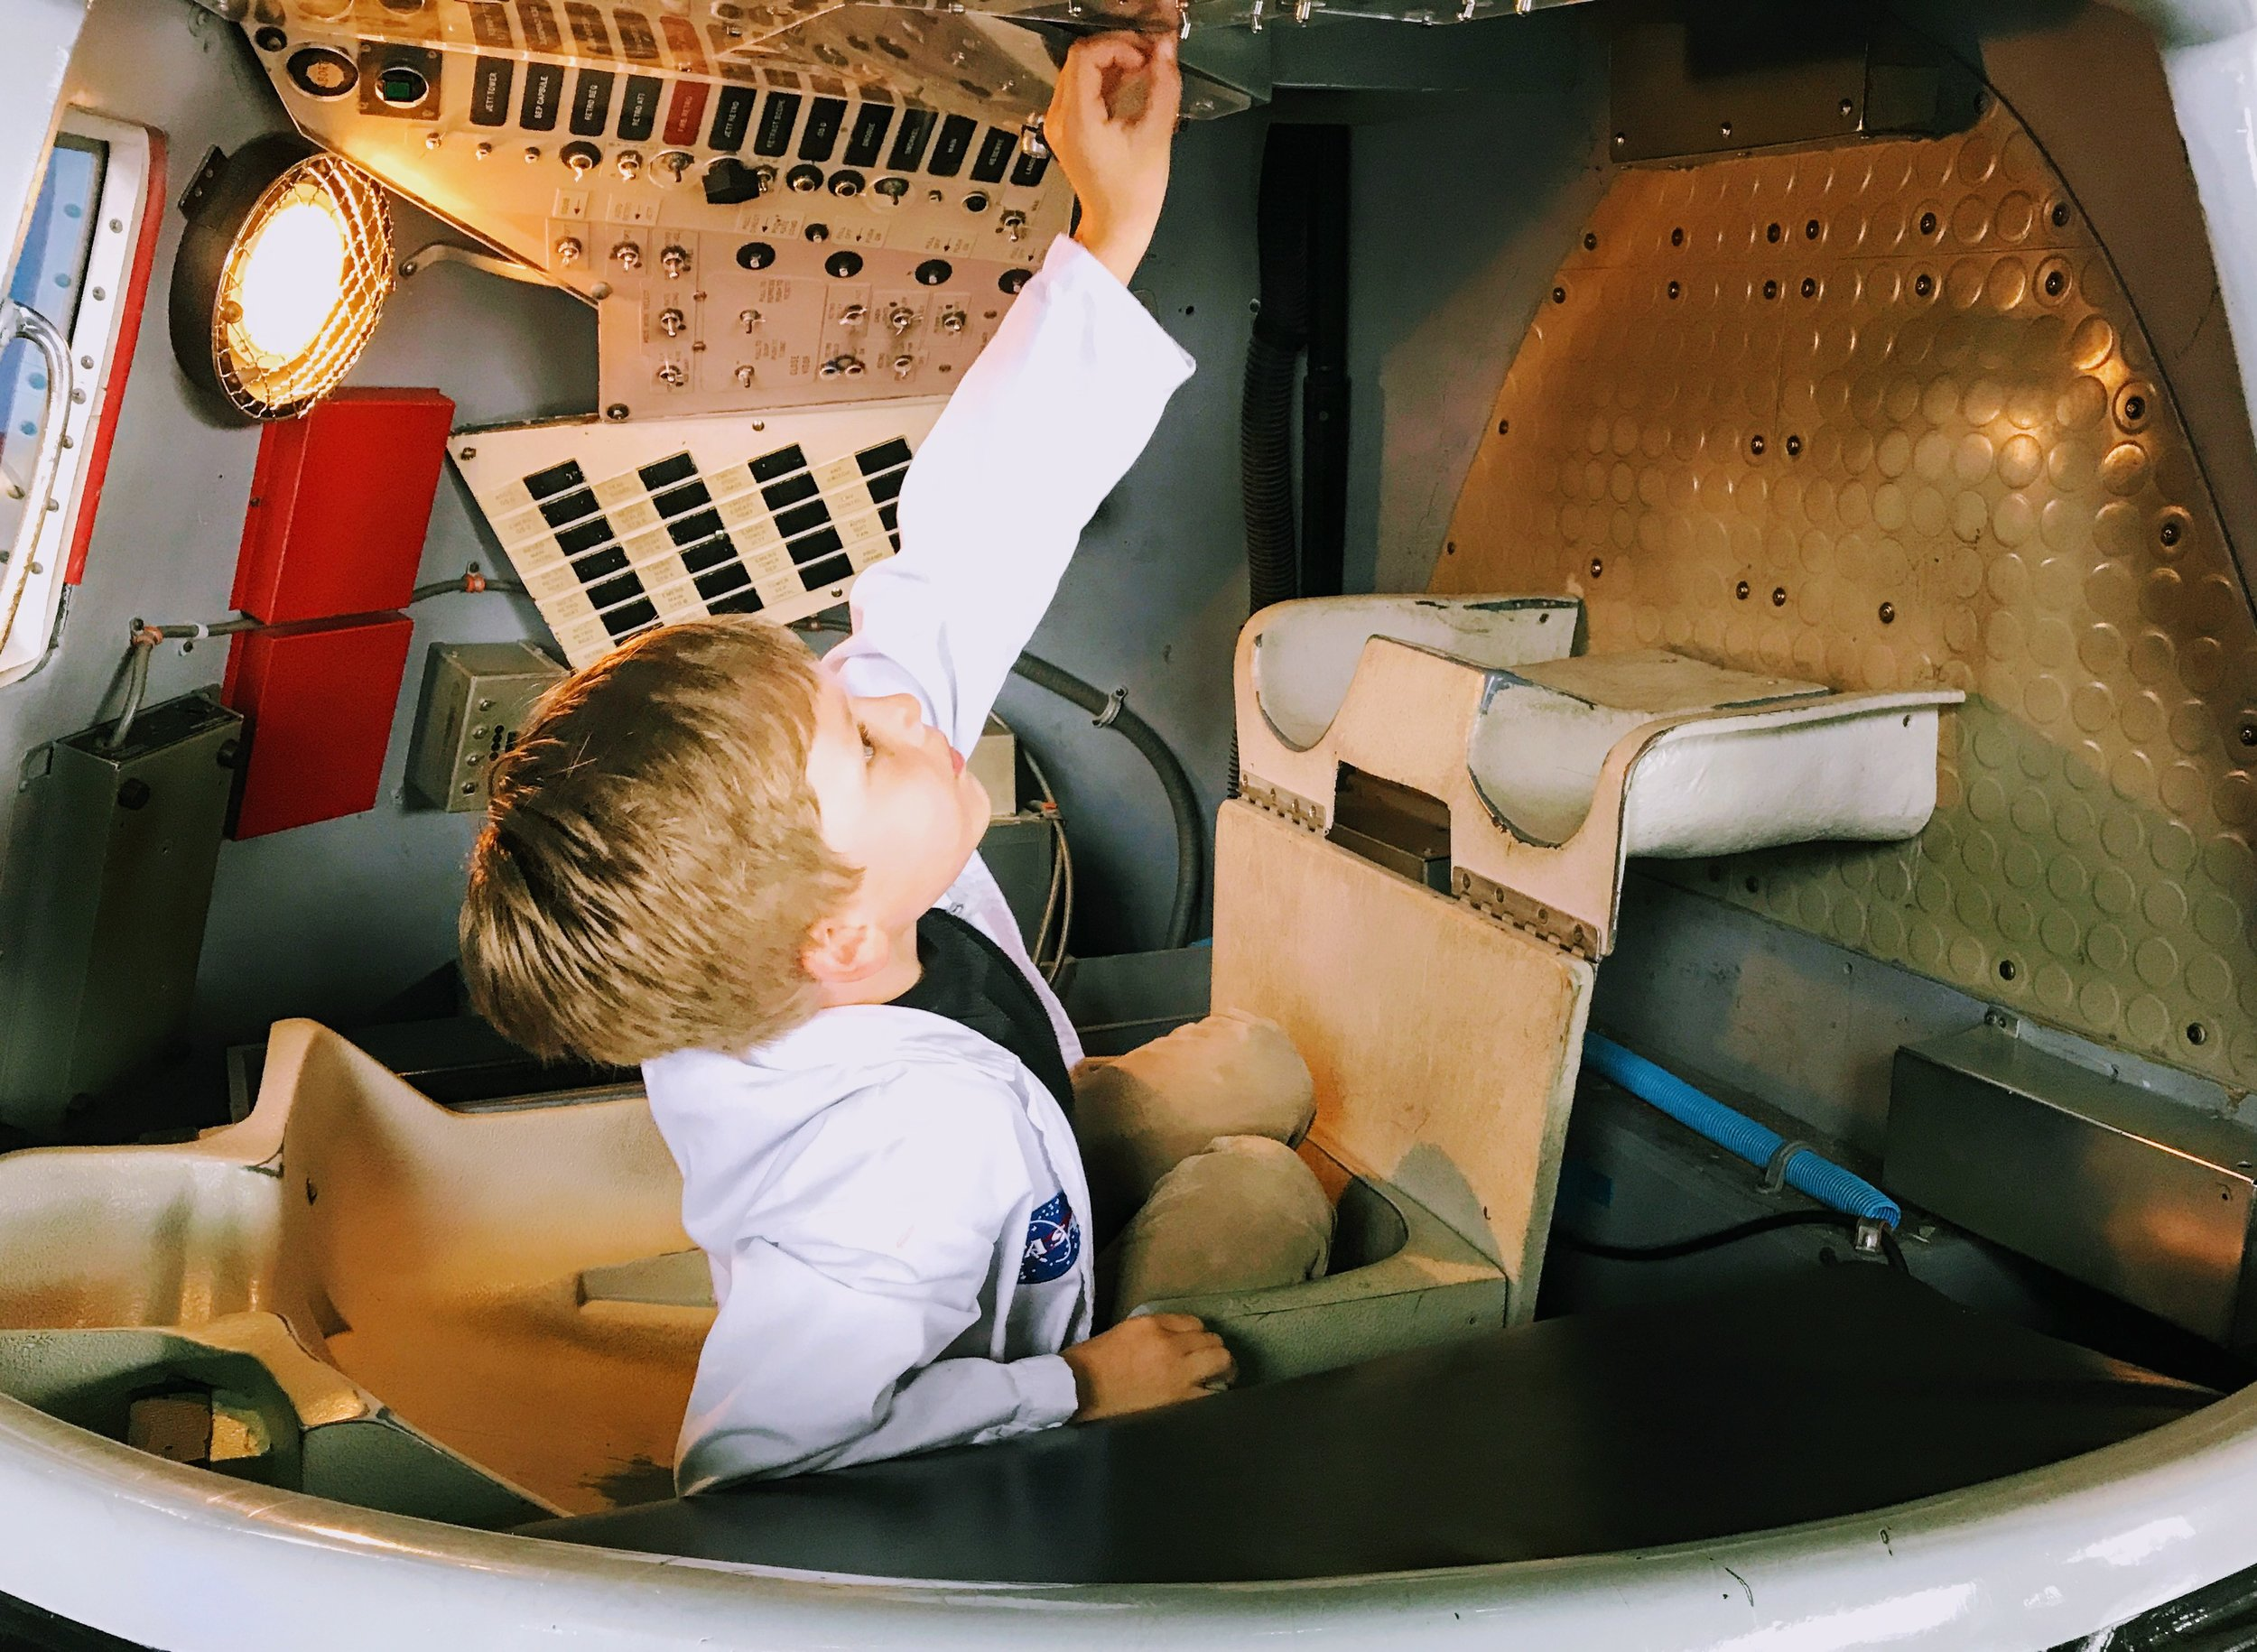 Flipping all switches and pressing all buttons at the U.S. Space and Rocket Center